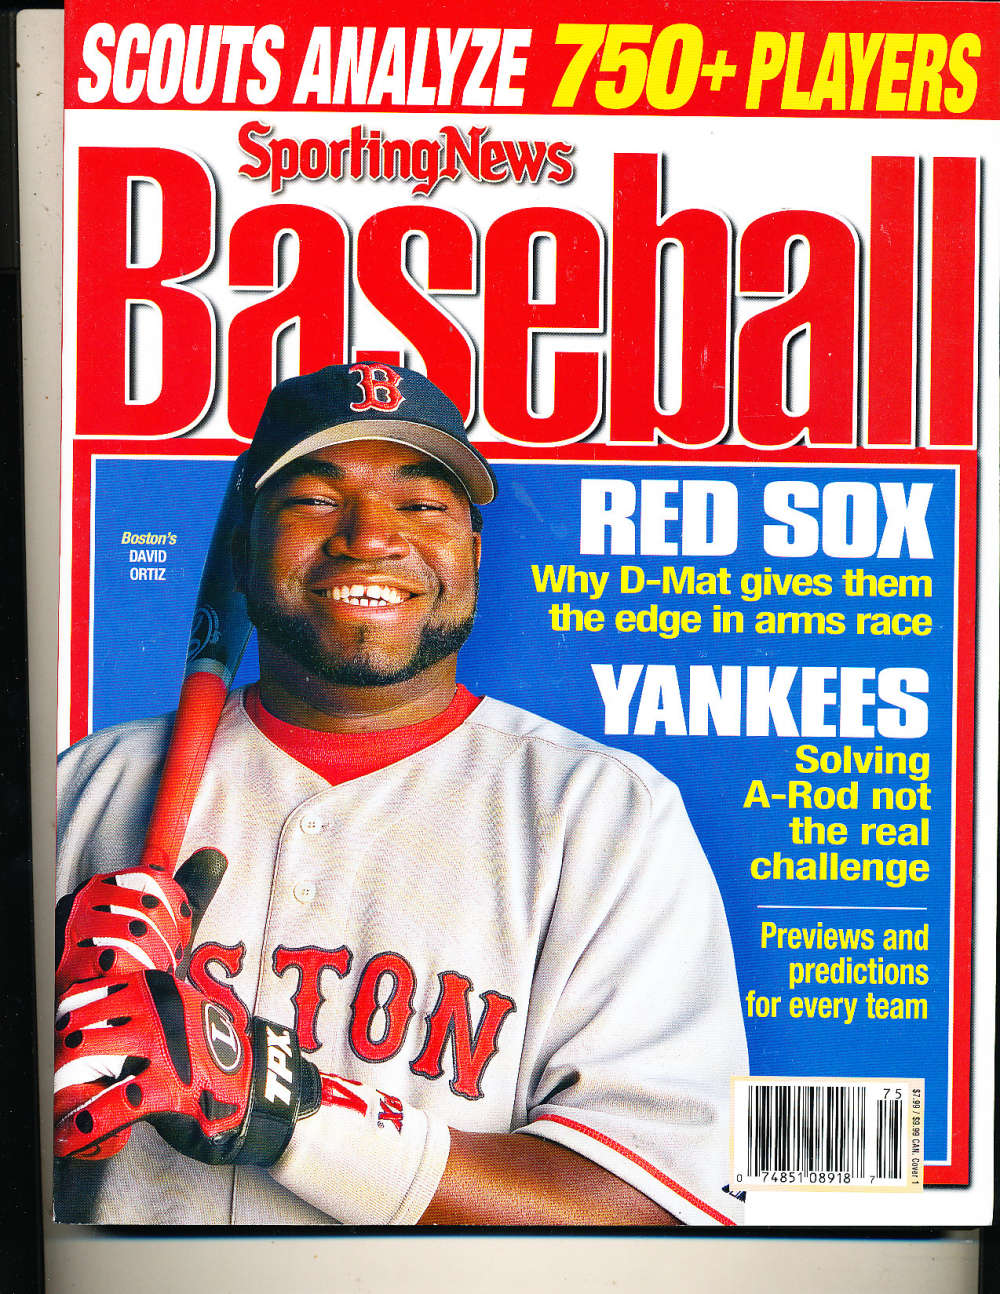 2007 The Sporting News Baseball David Ortiz Red Sox nm bx1